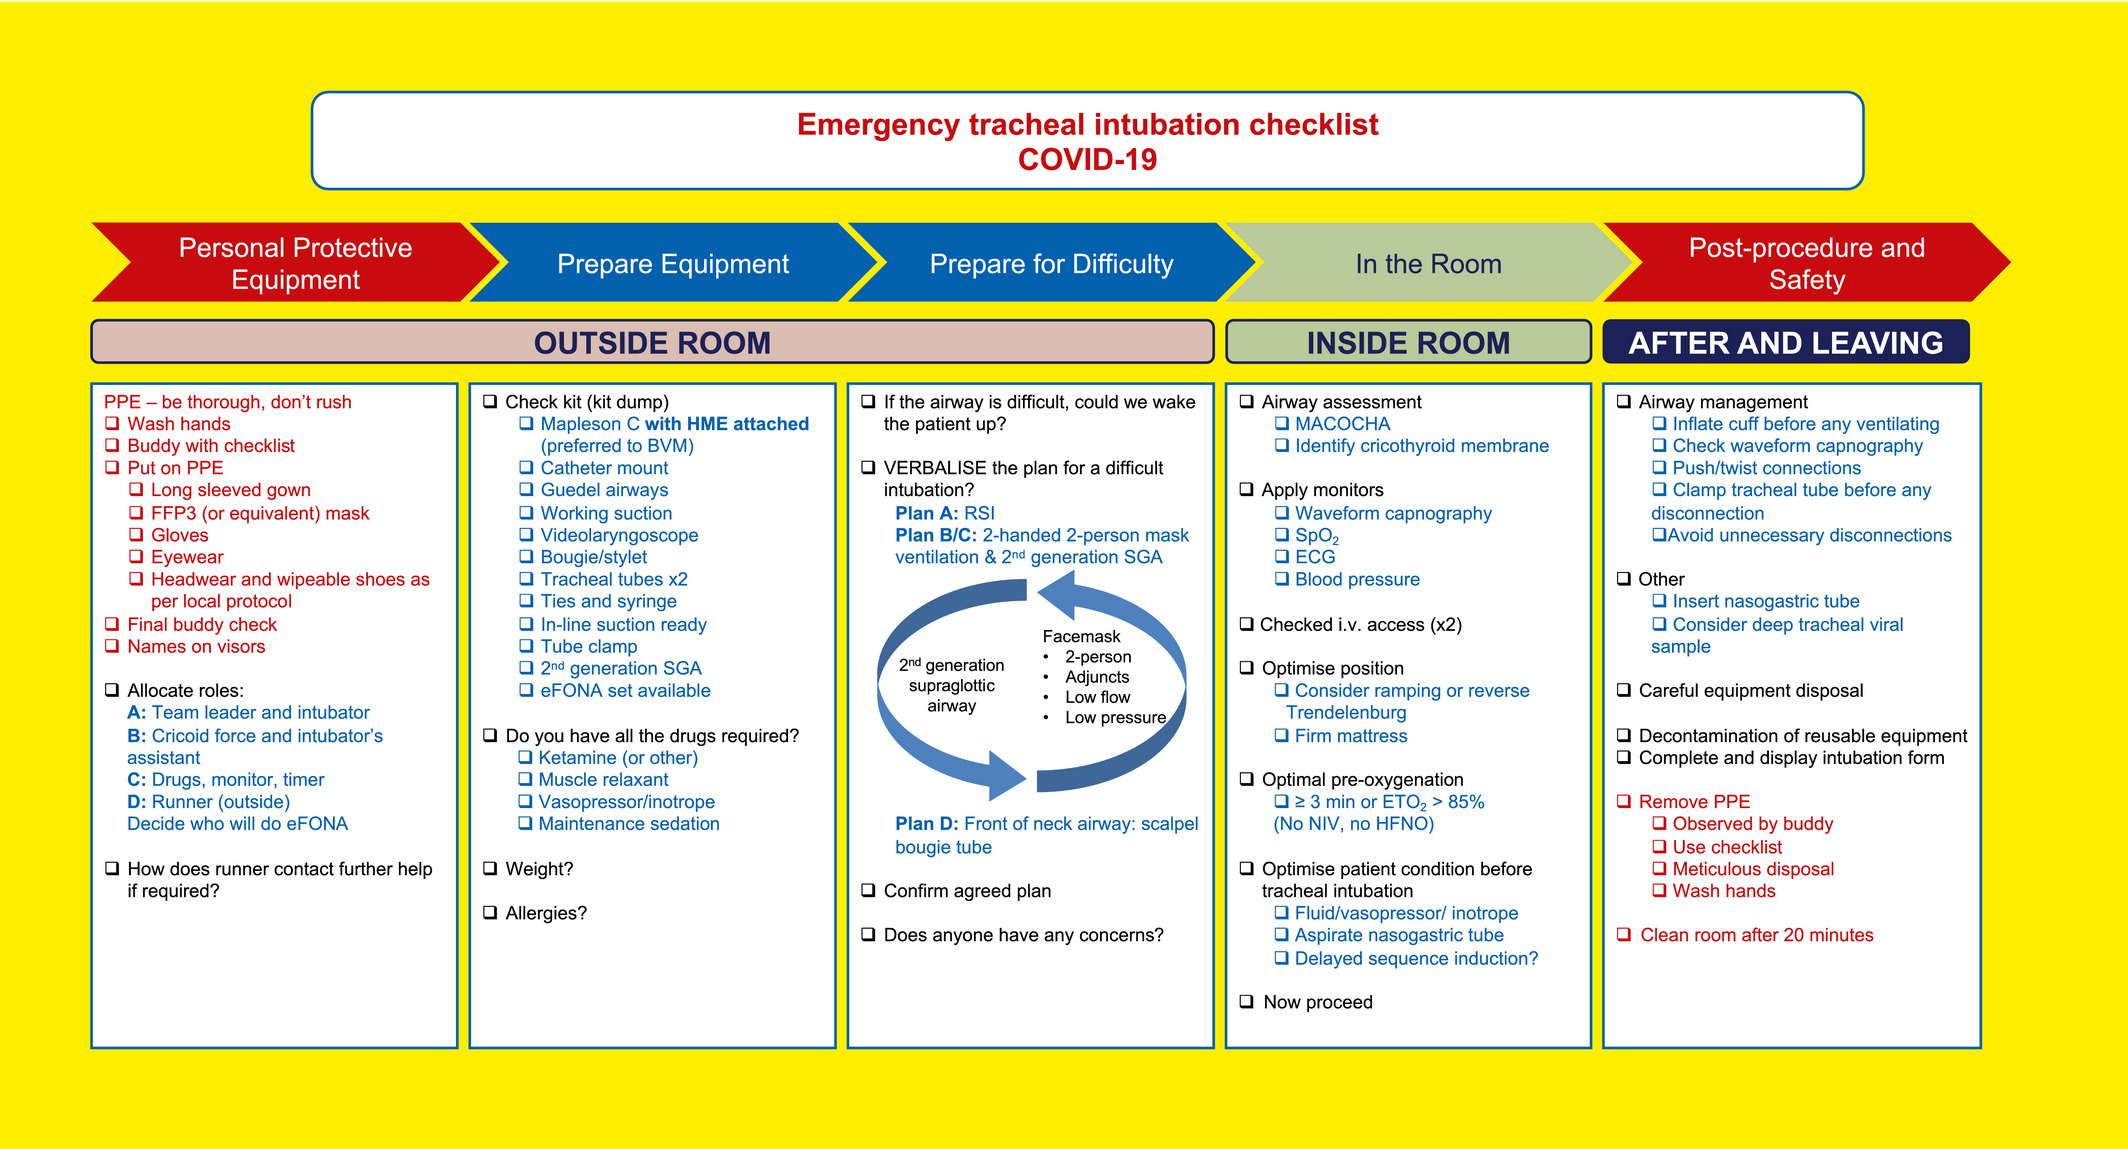 Consensus Guidelines For Managing The Airway In Patients